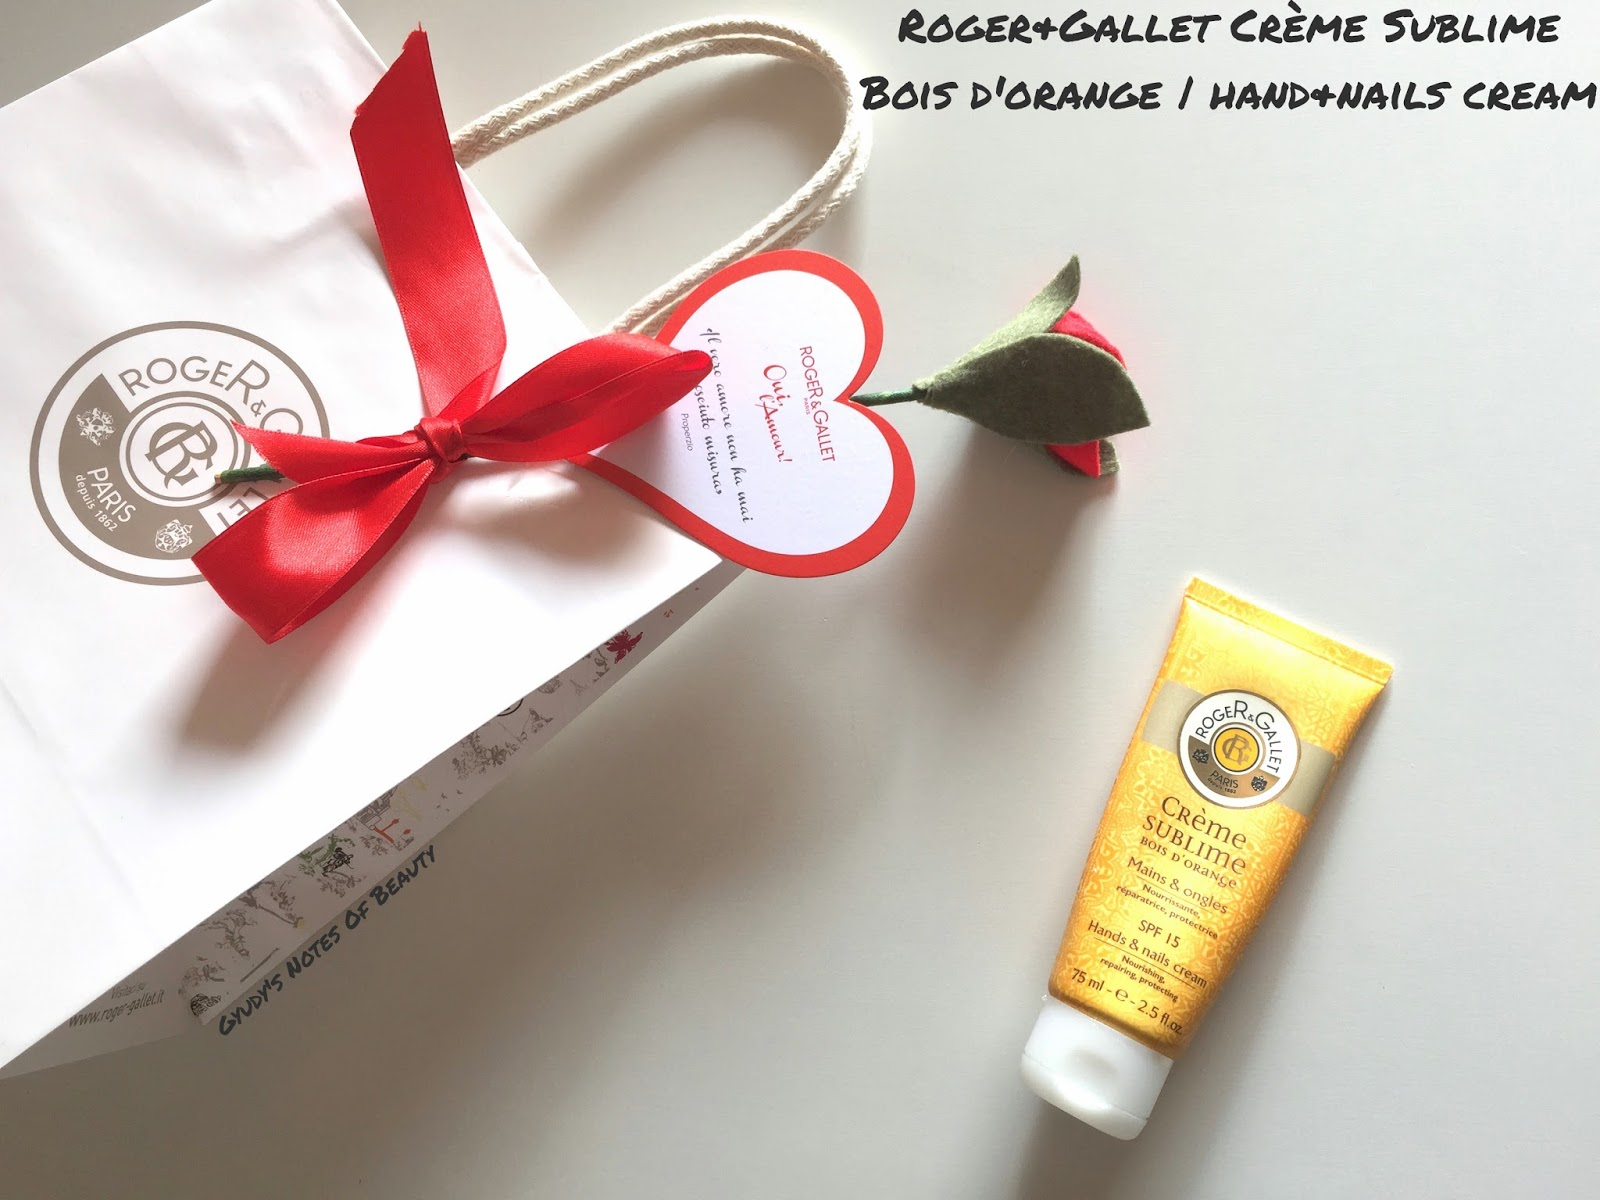 Roger&Gallet Crème Sublime Bois D'Orange hand and nails cream